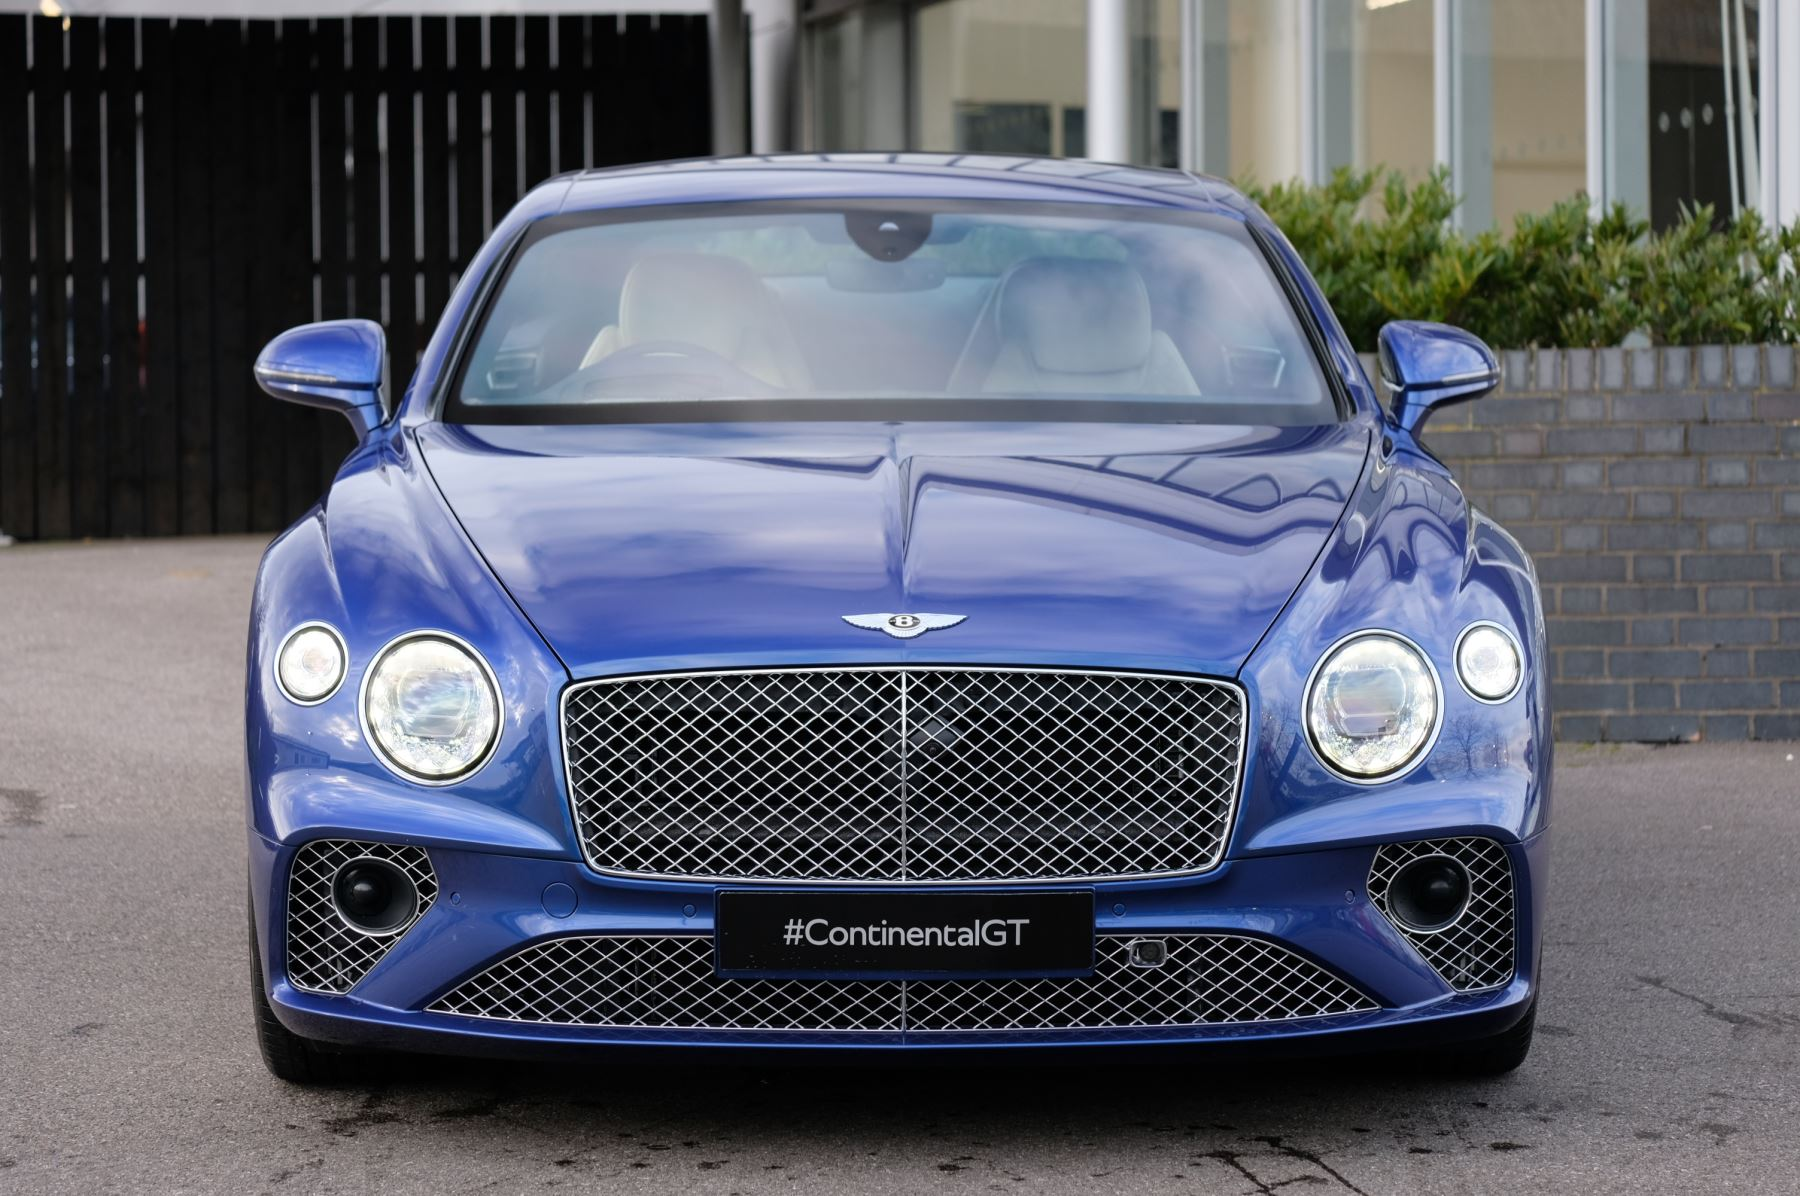 Bentley Continental GT 4.0 V8 Mulliner Driving Spec 2dr Auto - Centenary and Touring Specification image 2